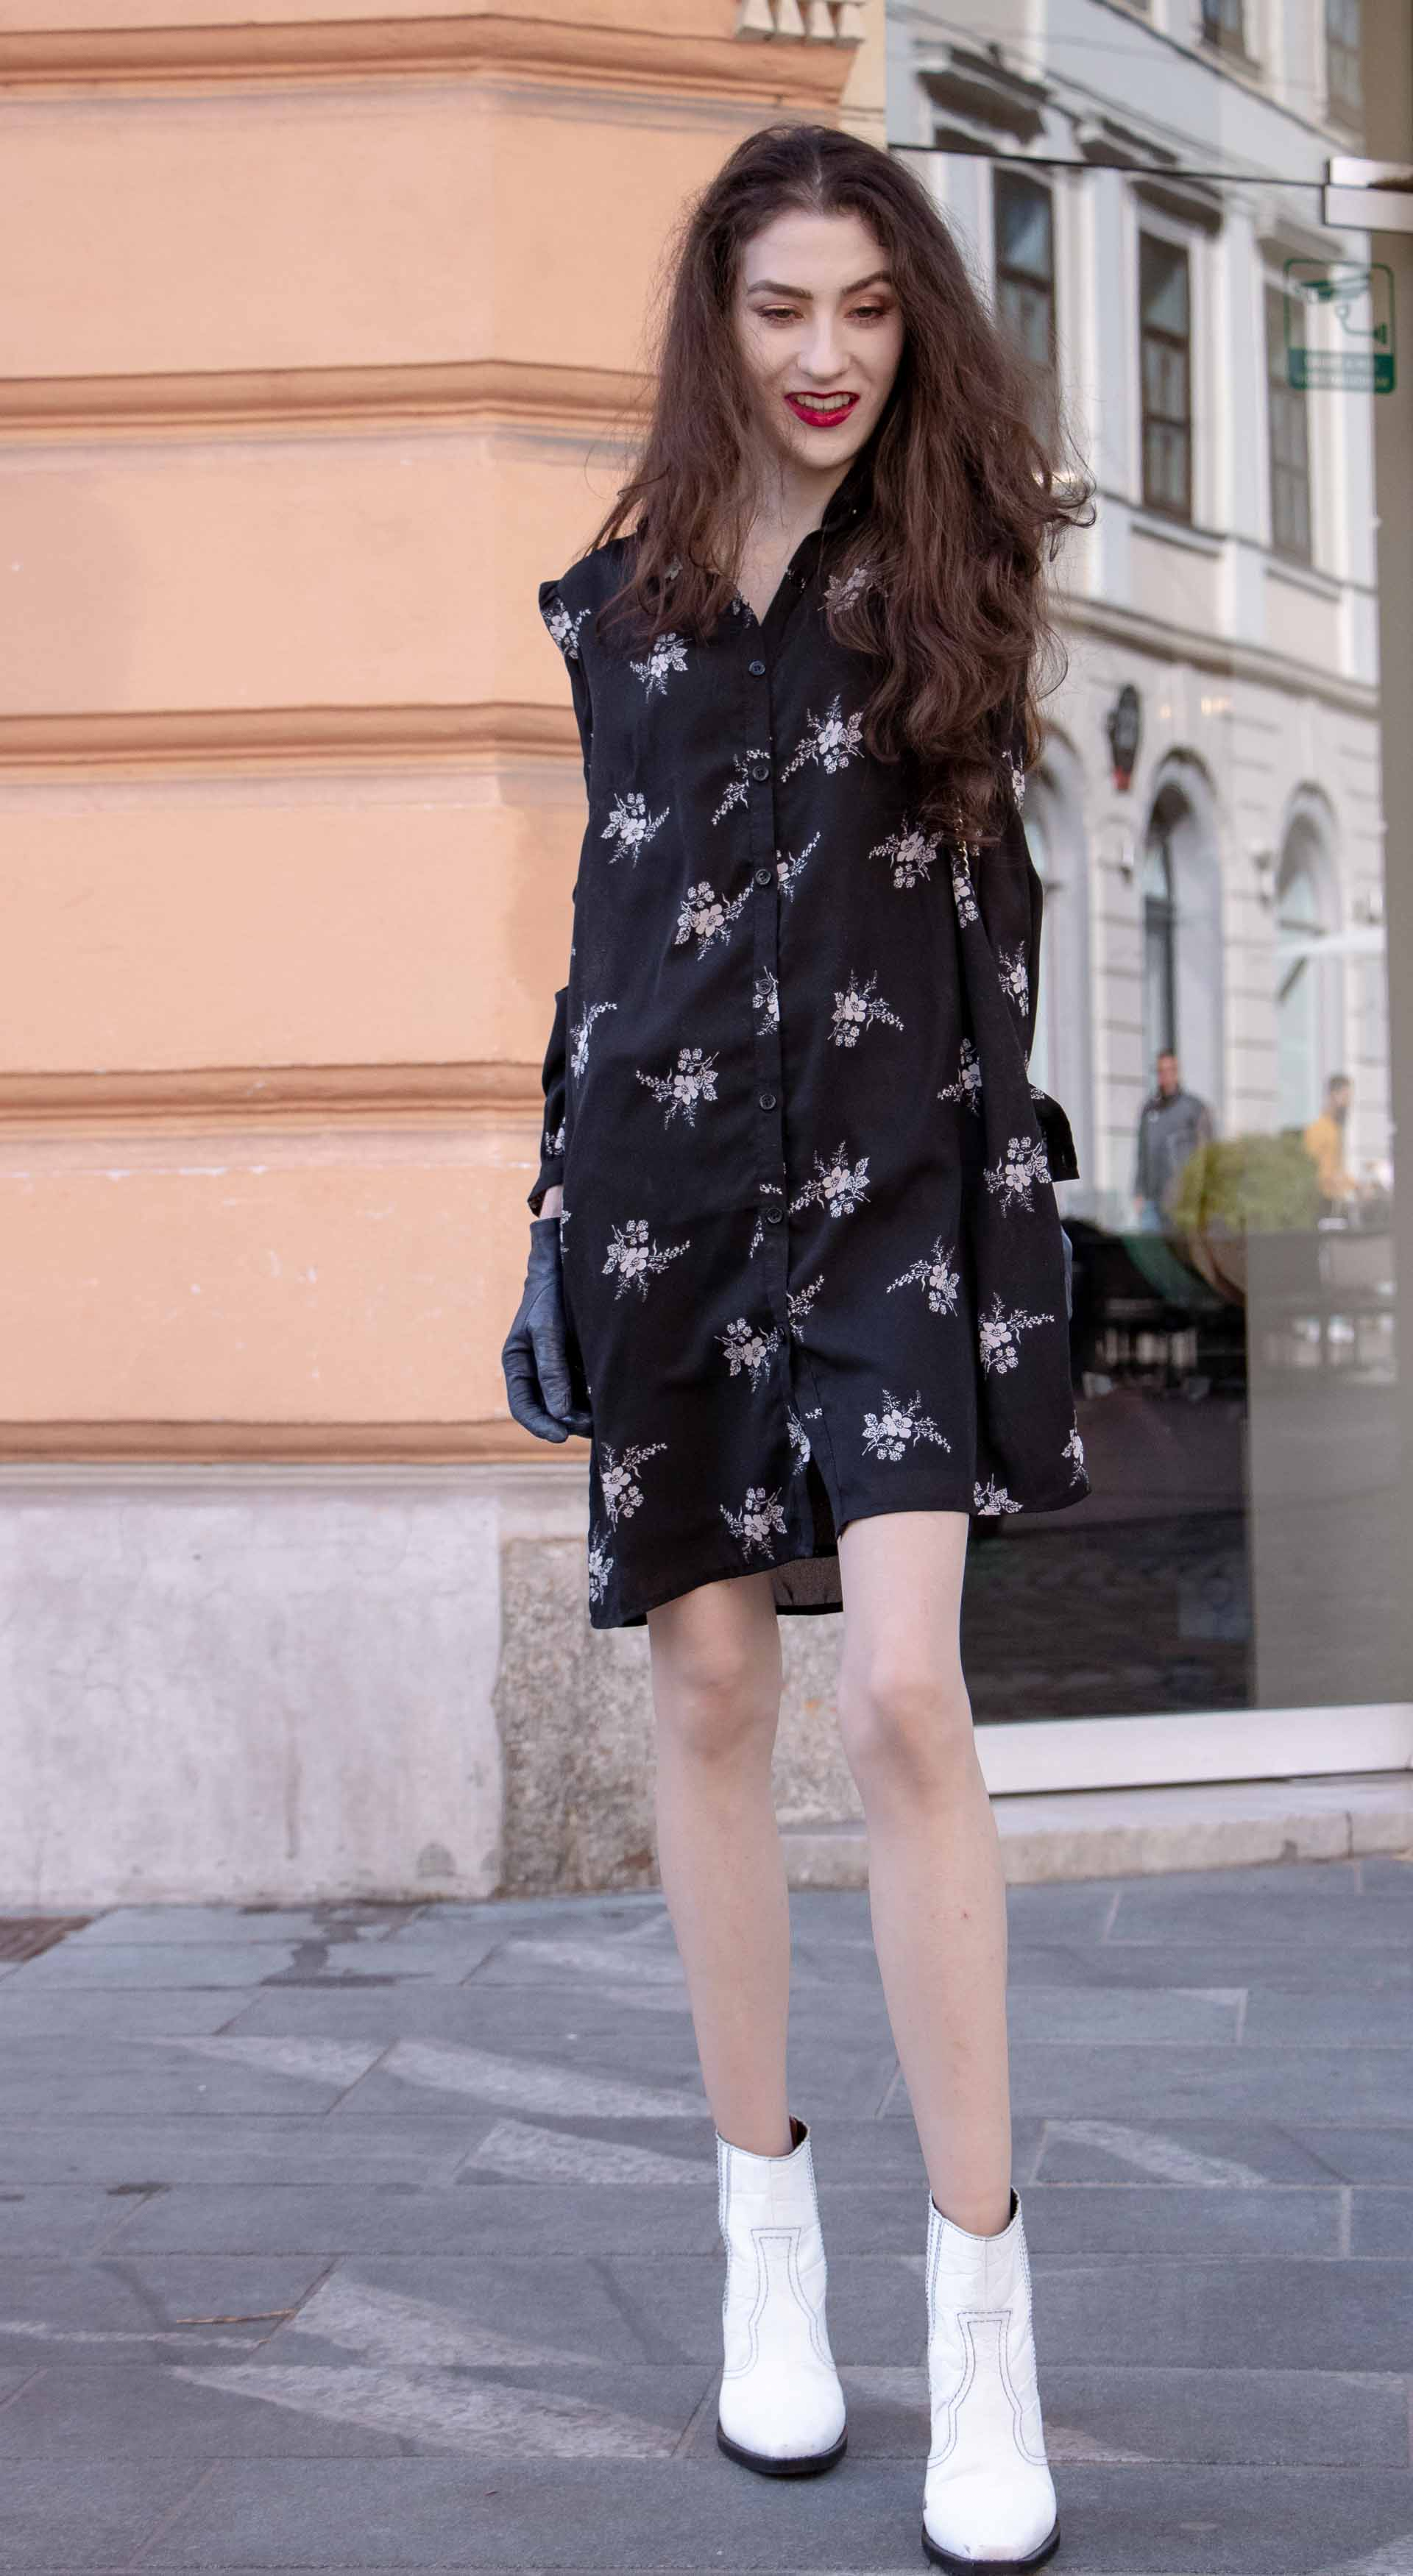 Beautiful Slovenian Fashion Blogger Veronika Lipar of Brunette from Wall dressed in dark floral shirtdress with white Ganni cowboy boots, white chain shoulder bag in autumn on the street in Ljubljana